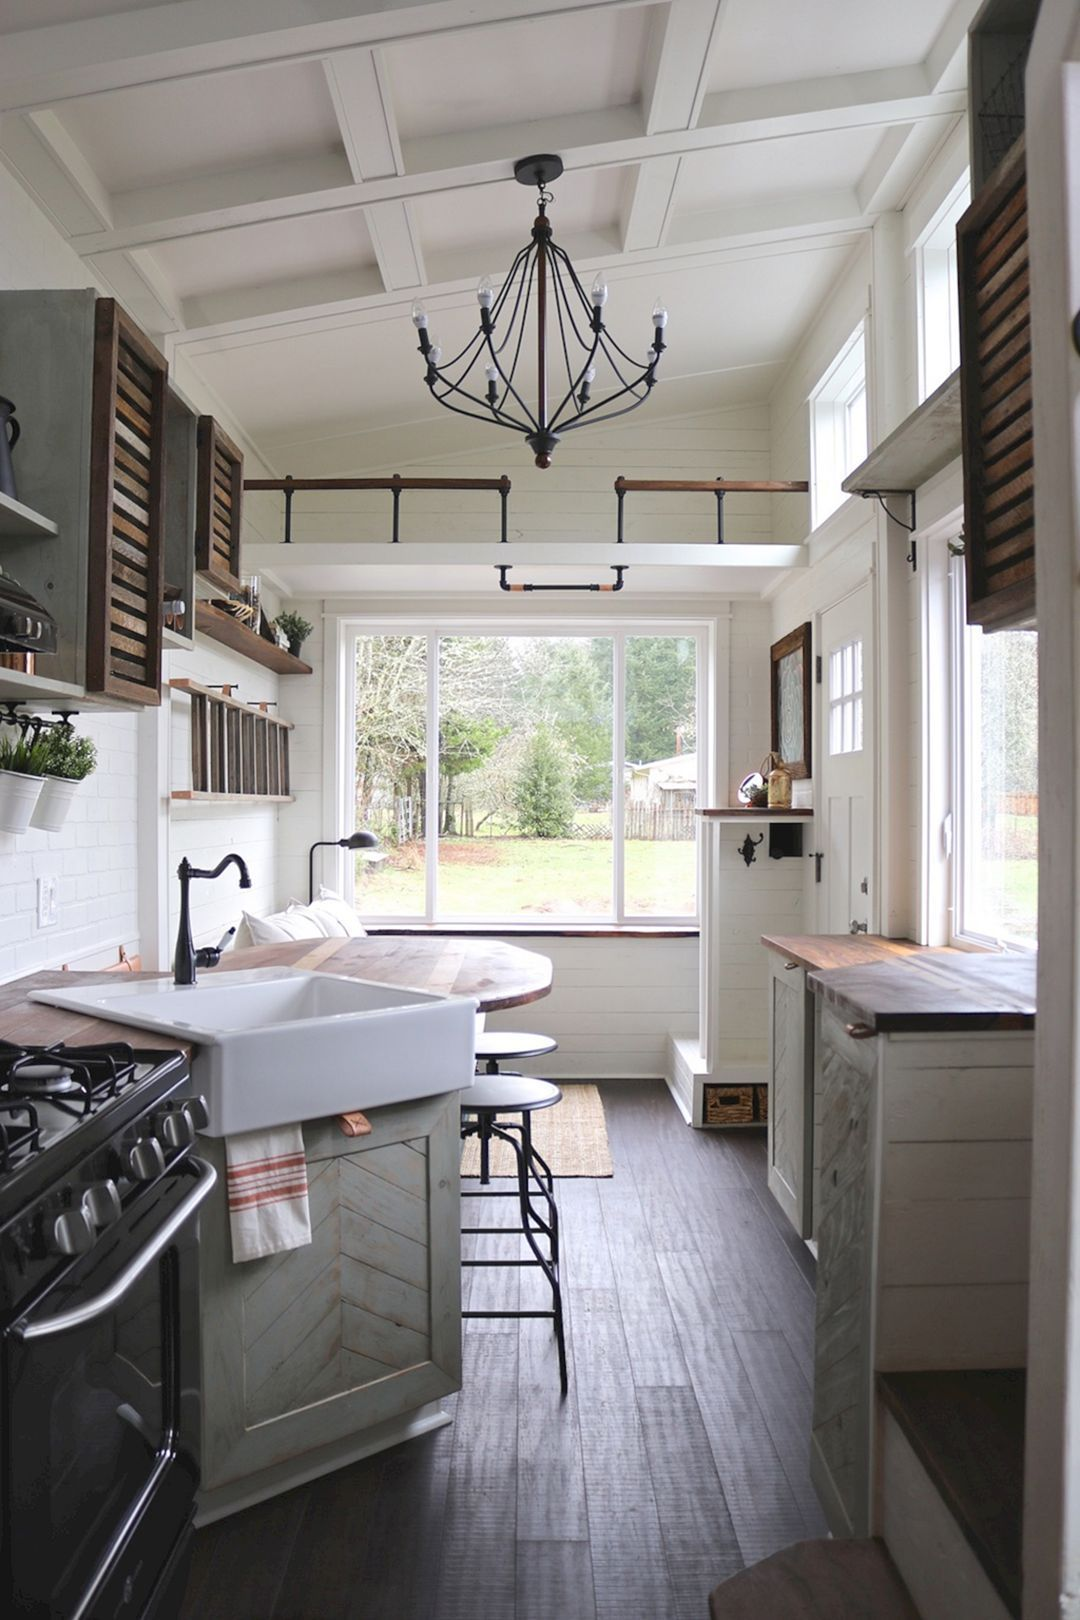 Awesome tiny kitchen design for your beautiful house also best small homes images bathroom vanity cabinets home decor rh pinterest